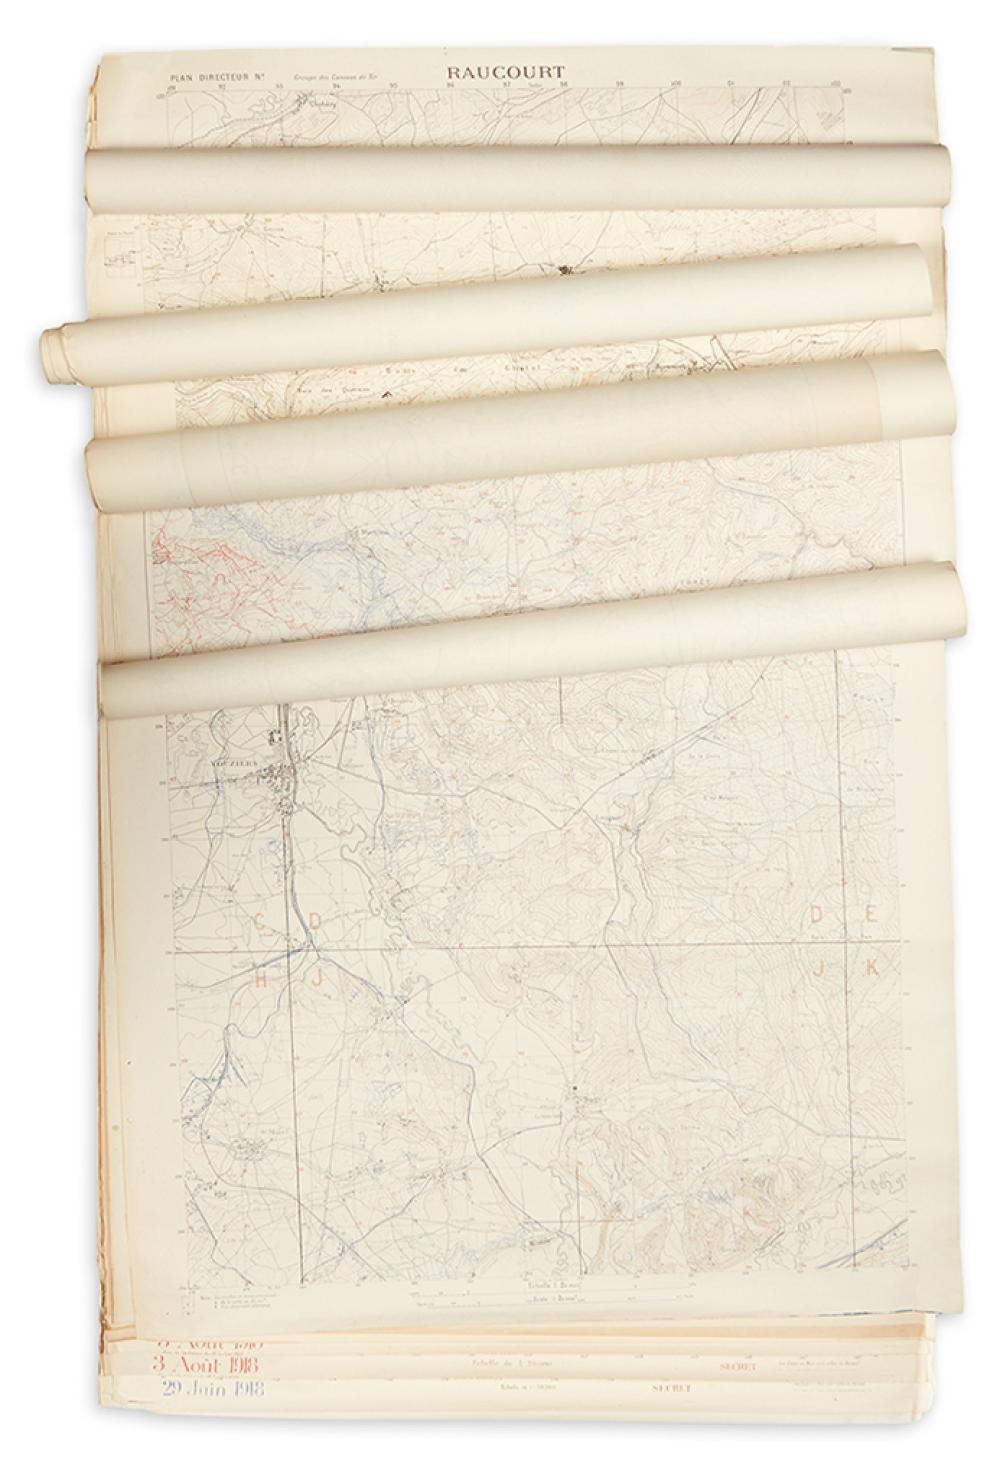 (WORLD WAR I.) Groupe Des Canevas De Tir. Group of 17 large topographical maps of war areas in France.